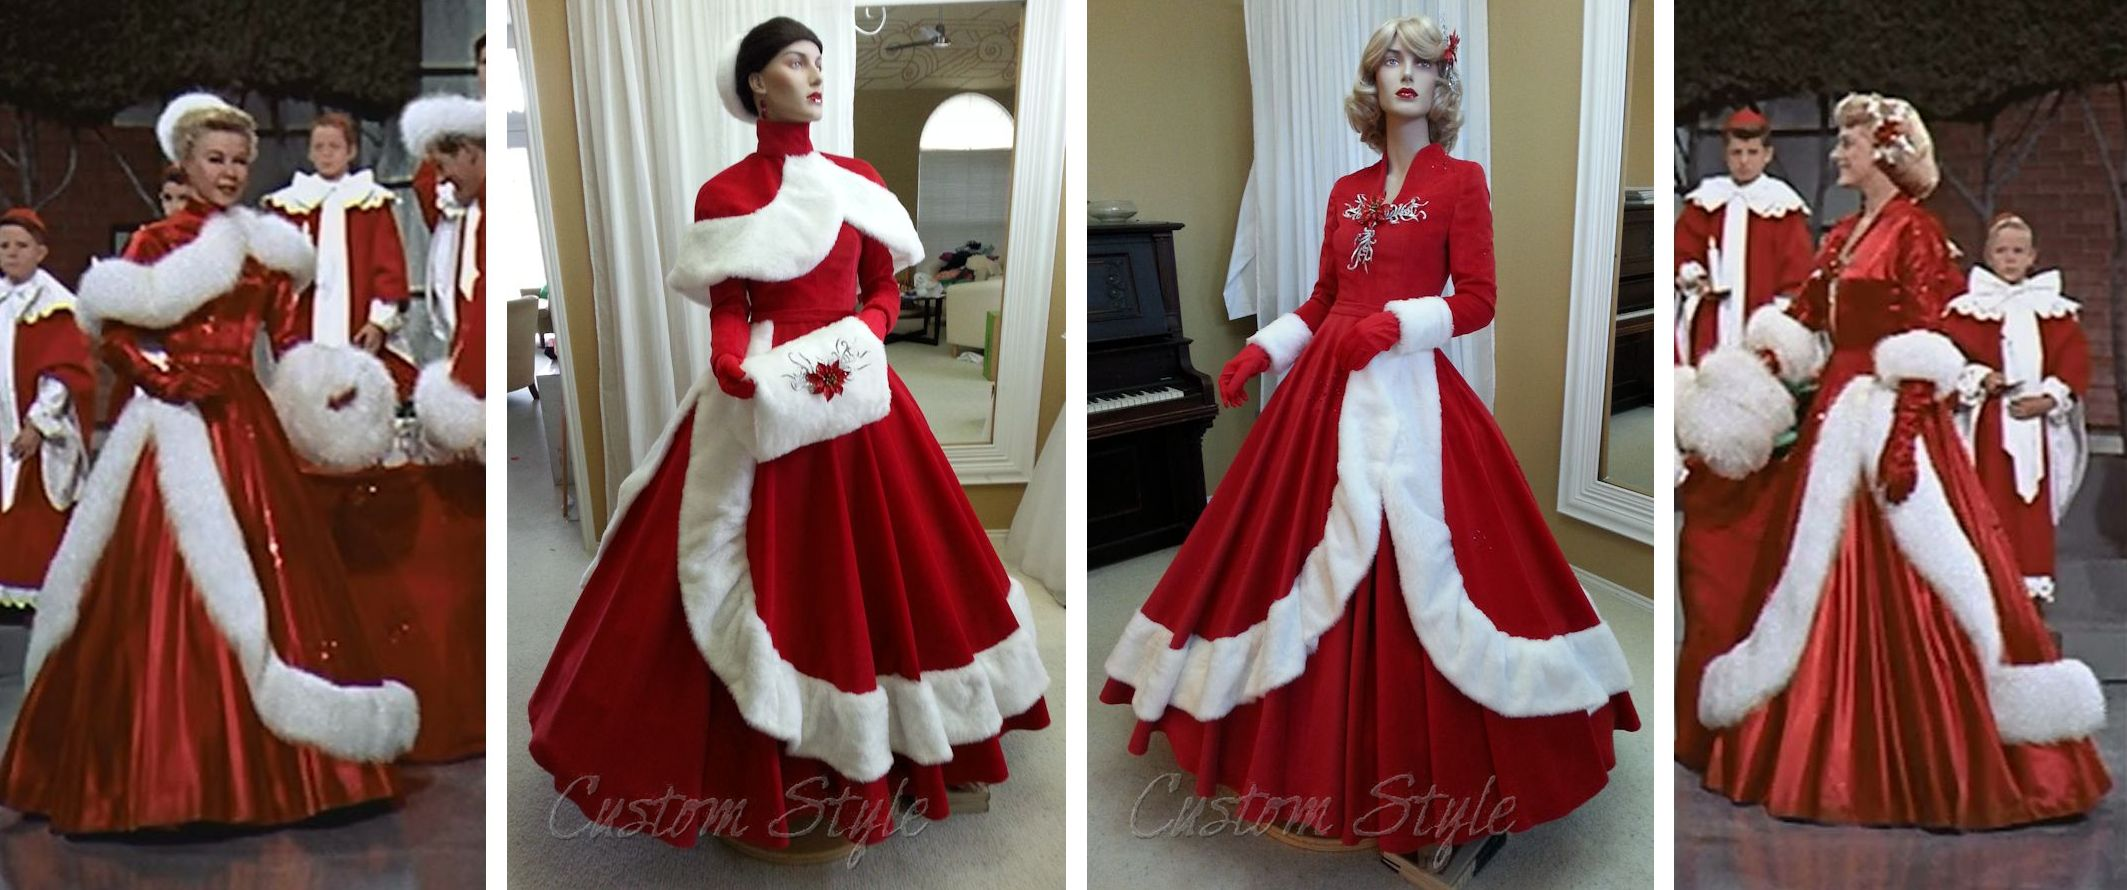 White Christmas Dresses for The Fantasy of Lights